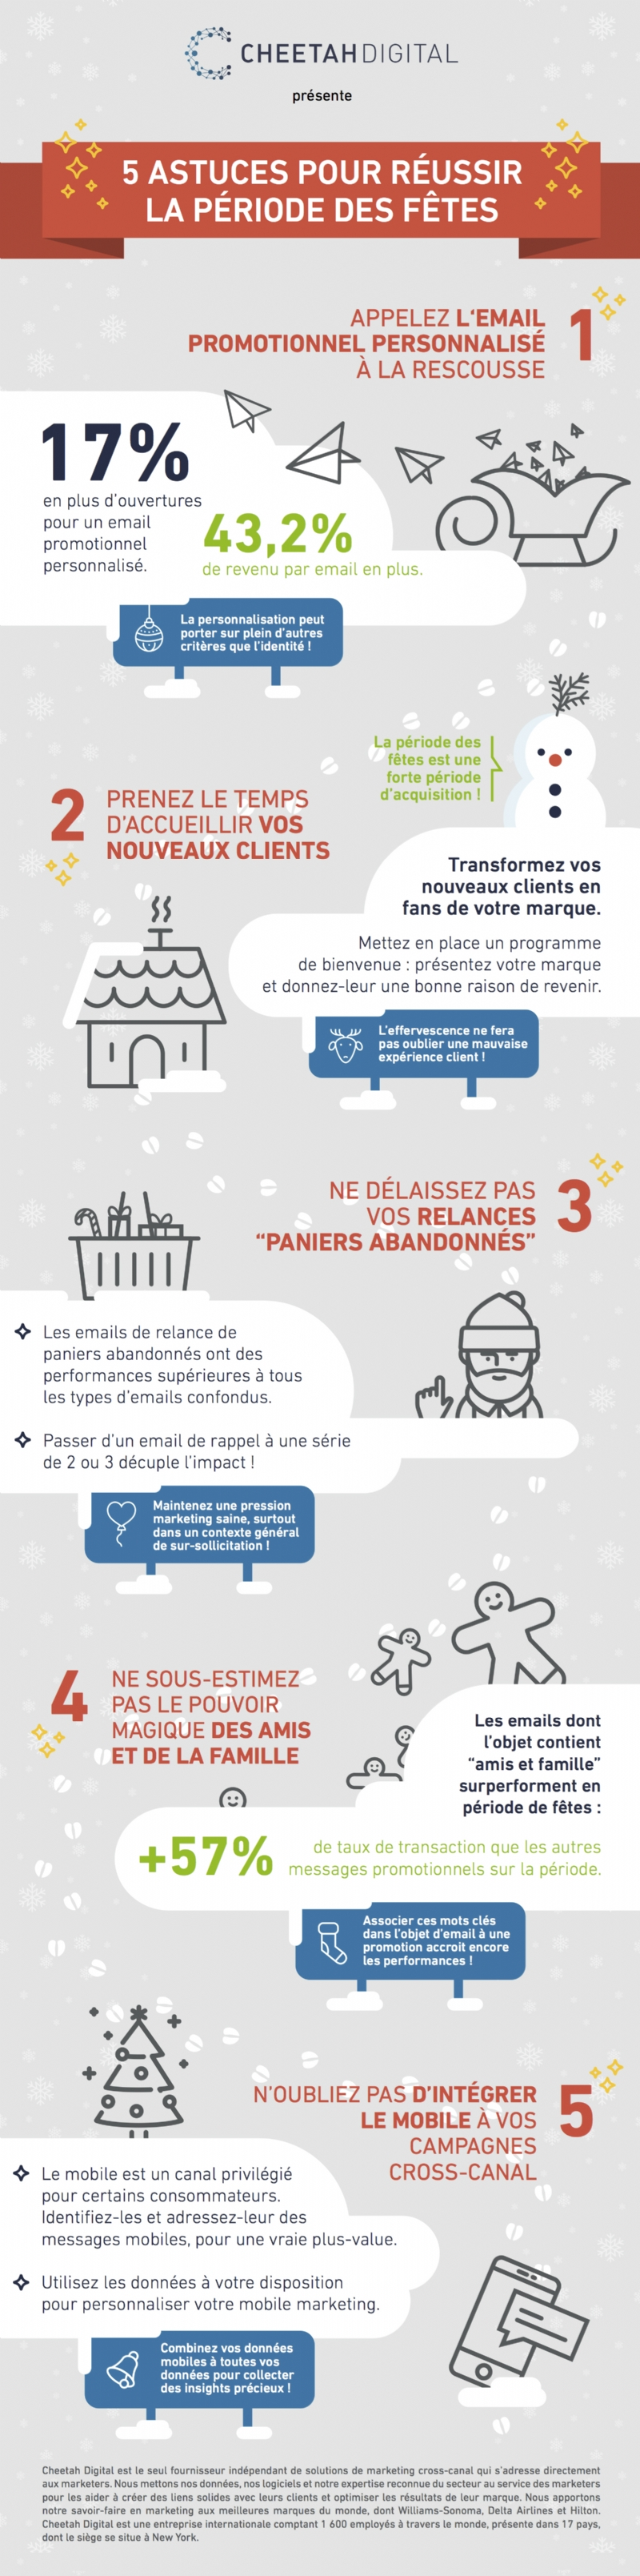 Infographie e-commerce : réussir ses campagnes marketing de Noël